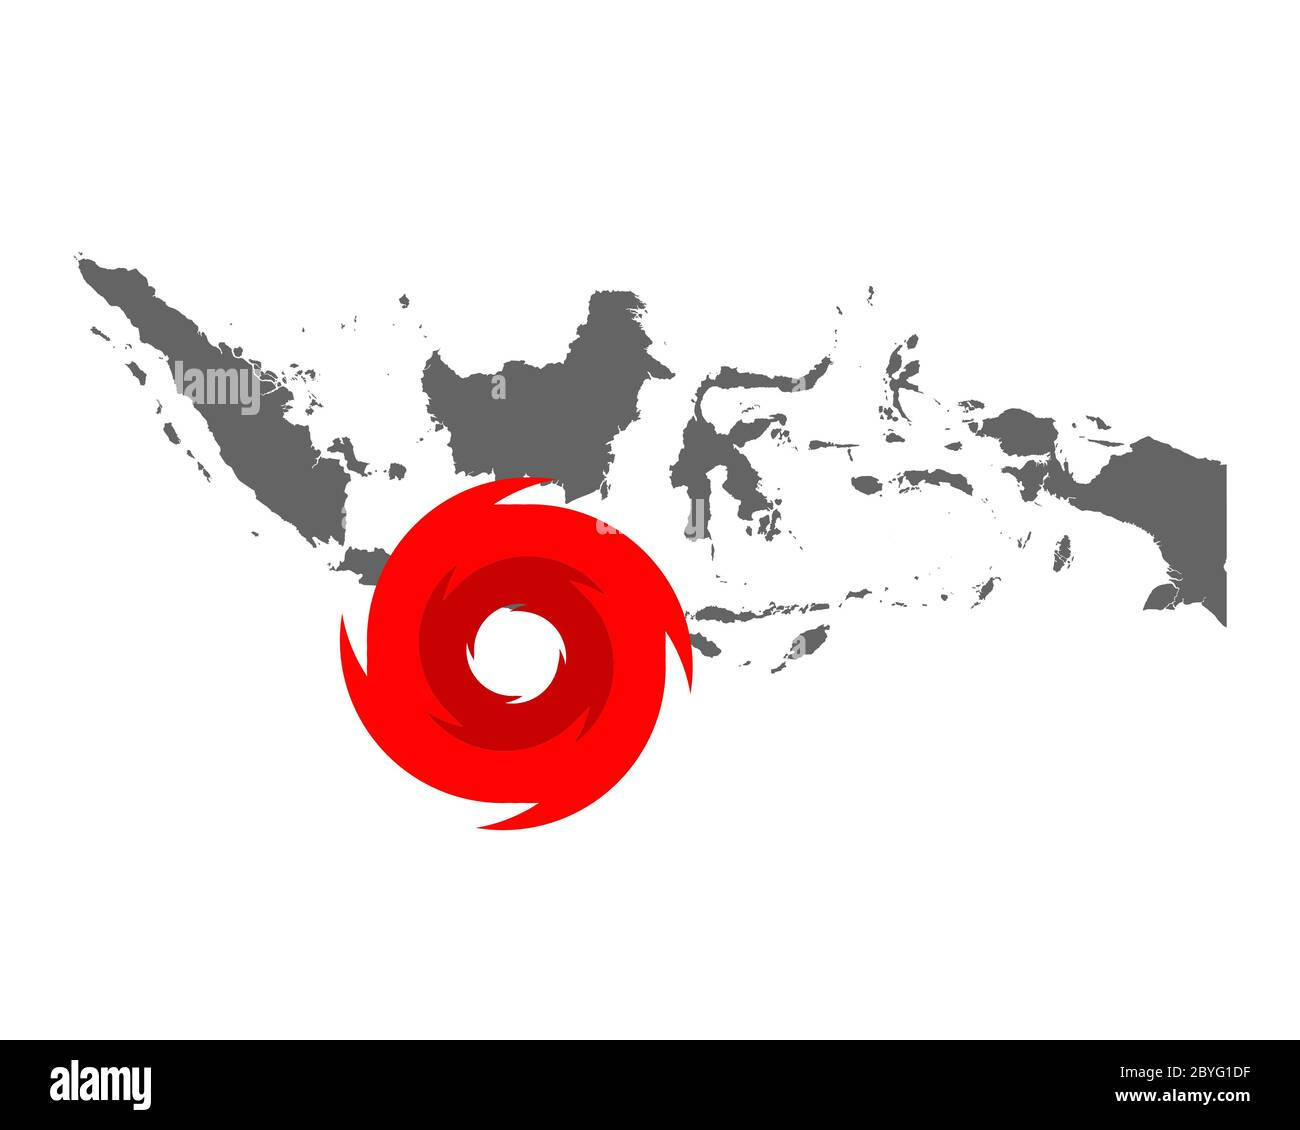 Map Of Indonesia And Hurricane Symbol Stock Photo Alamy You have come to the right place! alamy